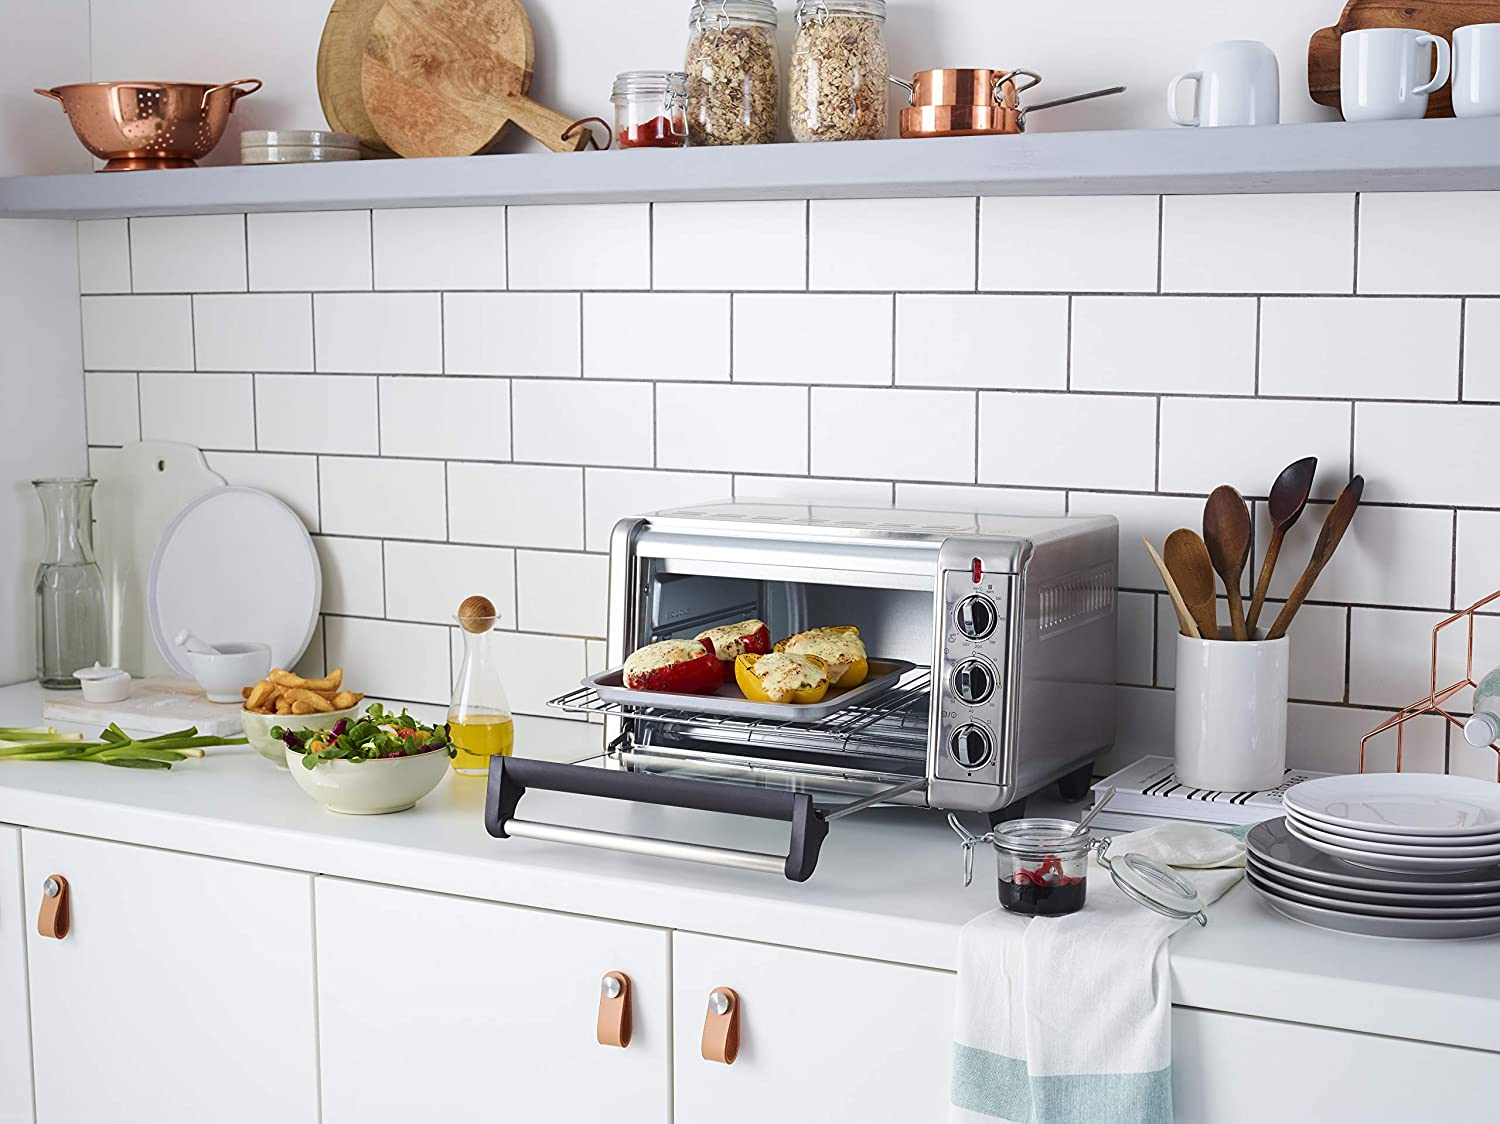 Russell Hobbs 26090 Mini Oven 12.6 liters 1500 W Stainless Steel